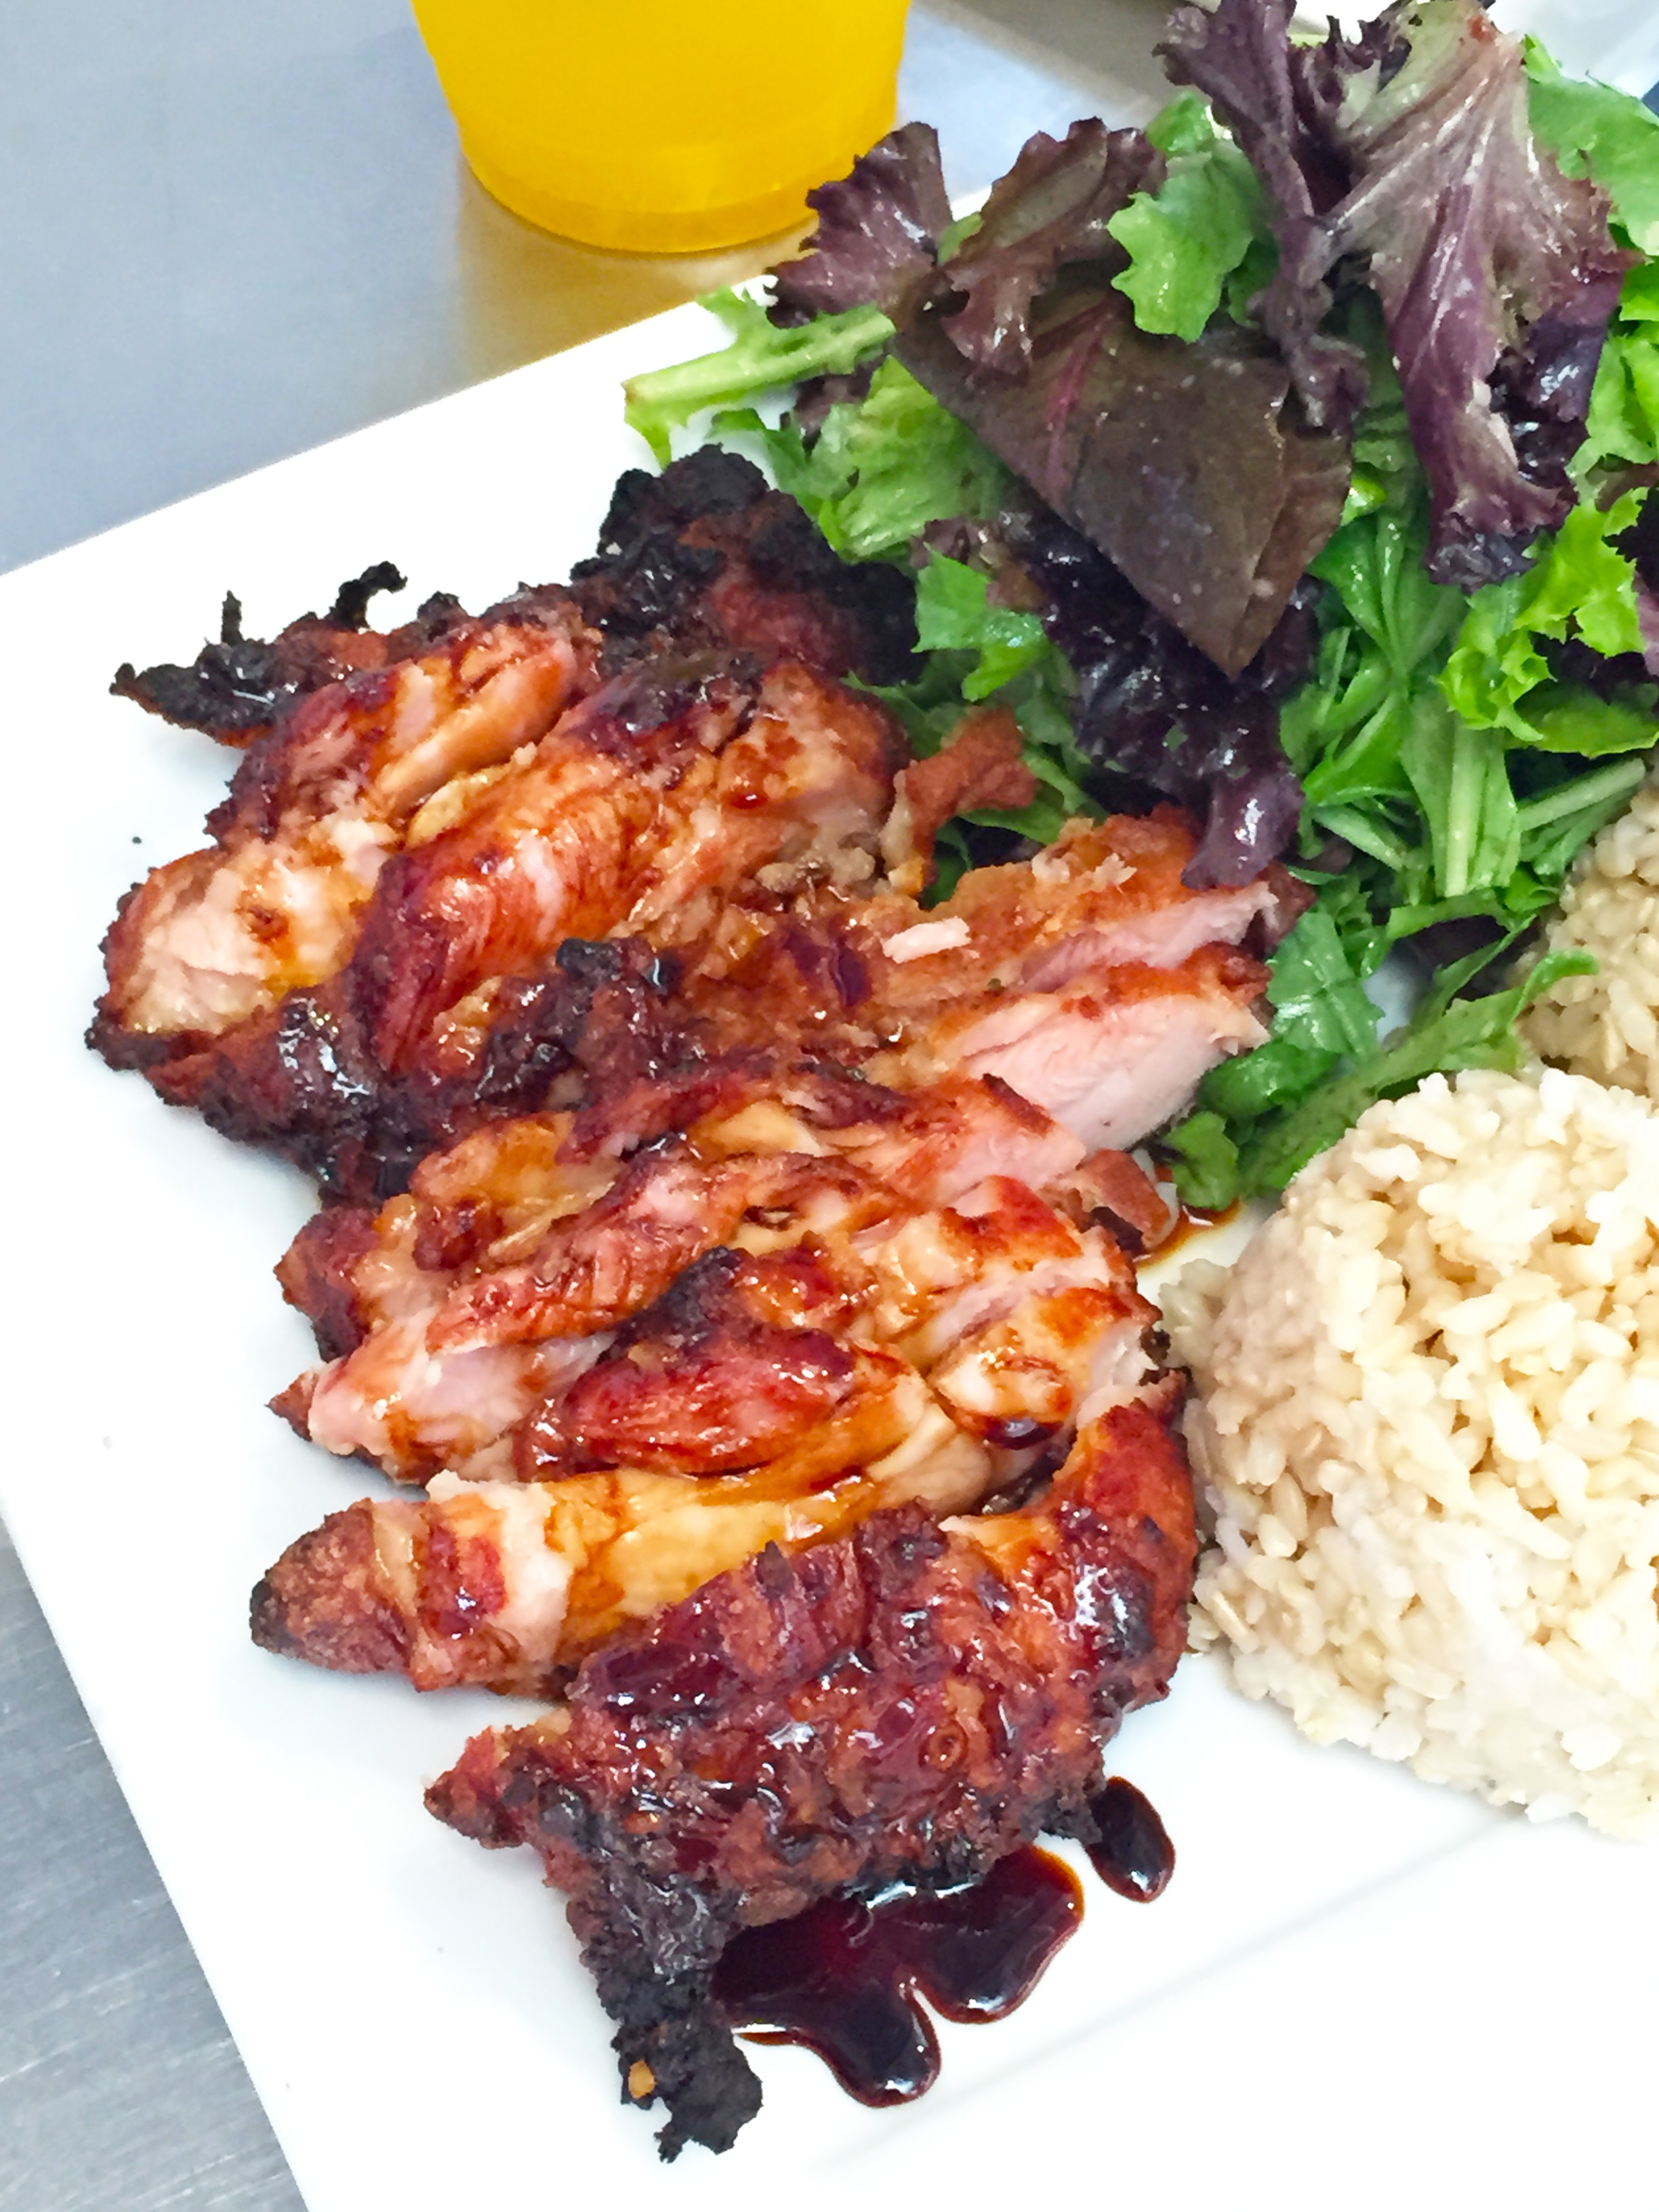 Mochiko Fried Chicken - Hawaiian-style chicken marinated in a homemade wet batter, fried then oven baked. Served with salad and brown rice.